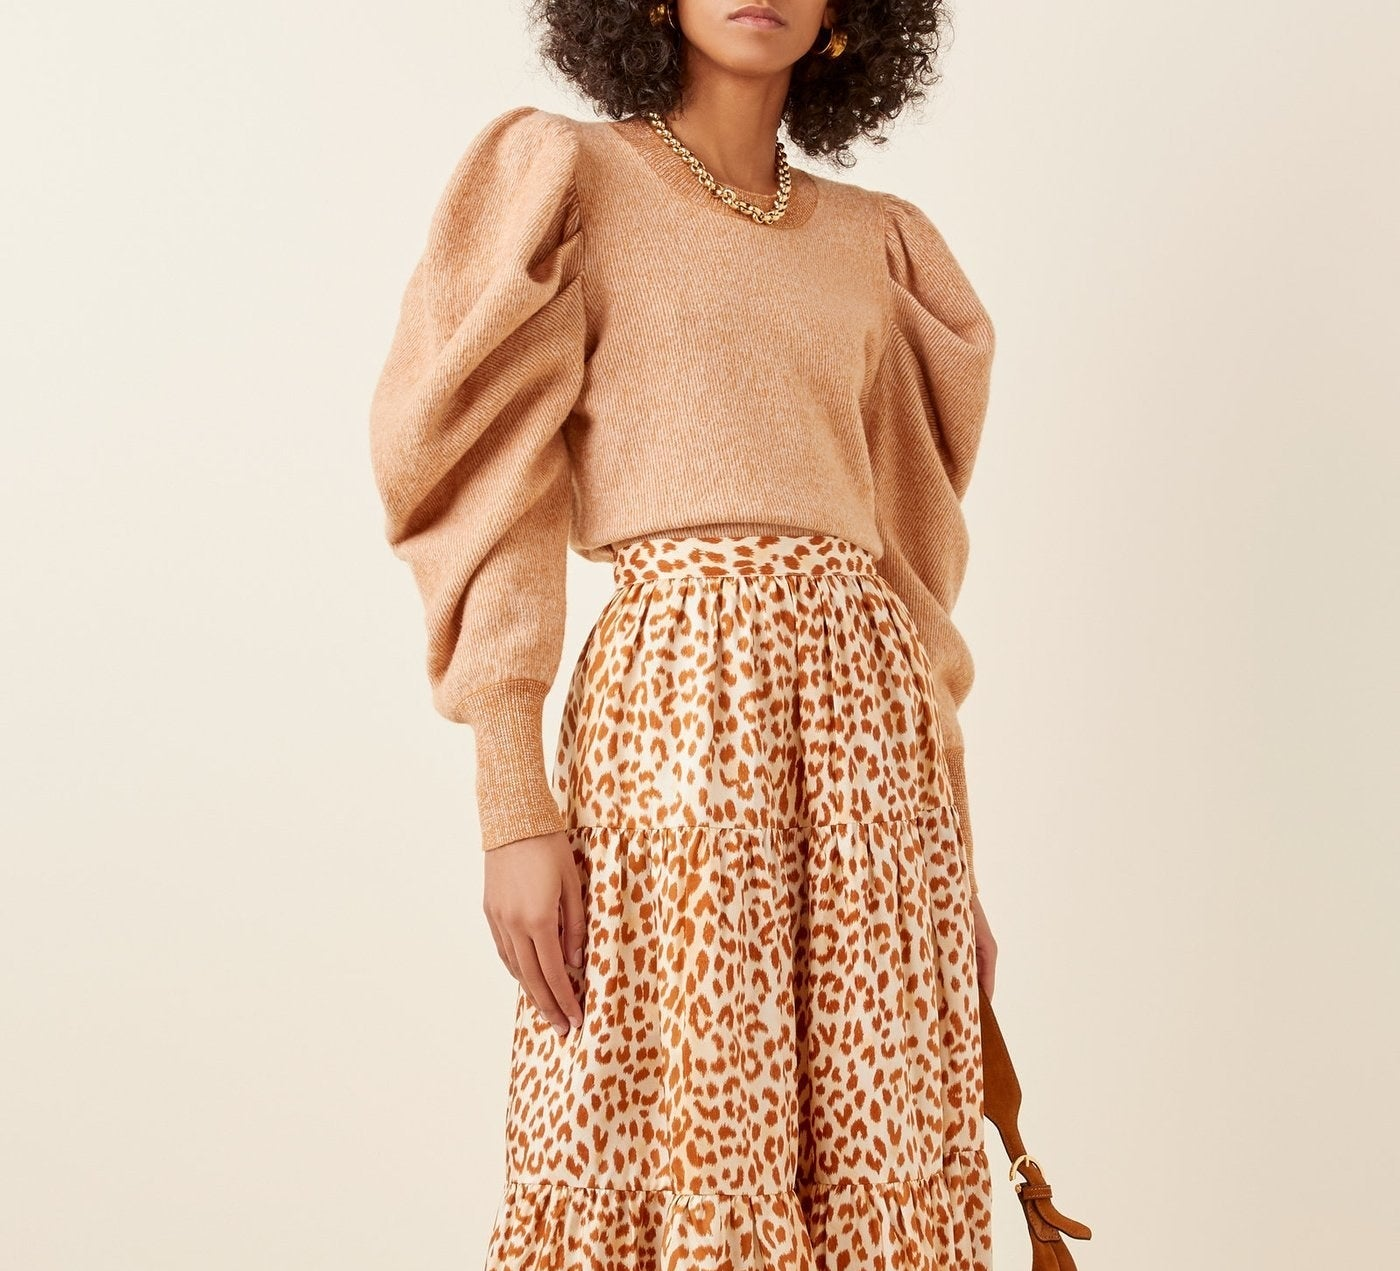 Model wearing the crewneck sweater with exaggerated puff-sleeves in tan with darker tan trim on the sleeves and neckline.